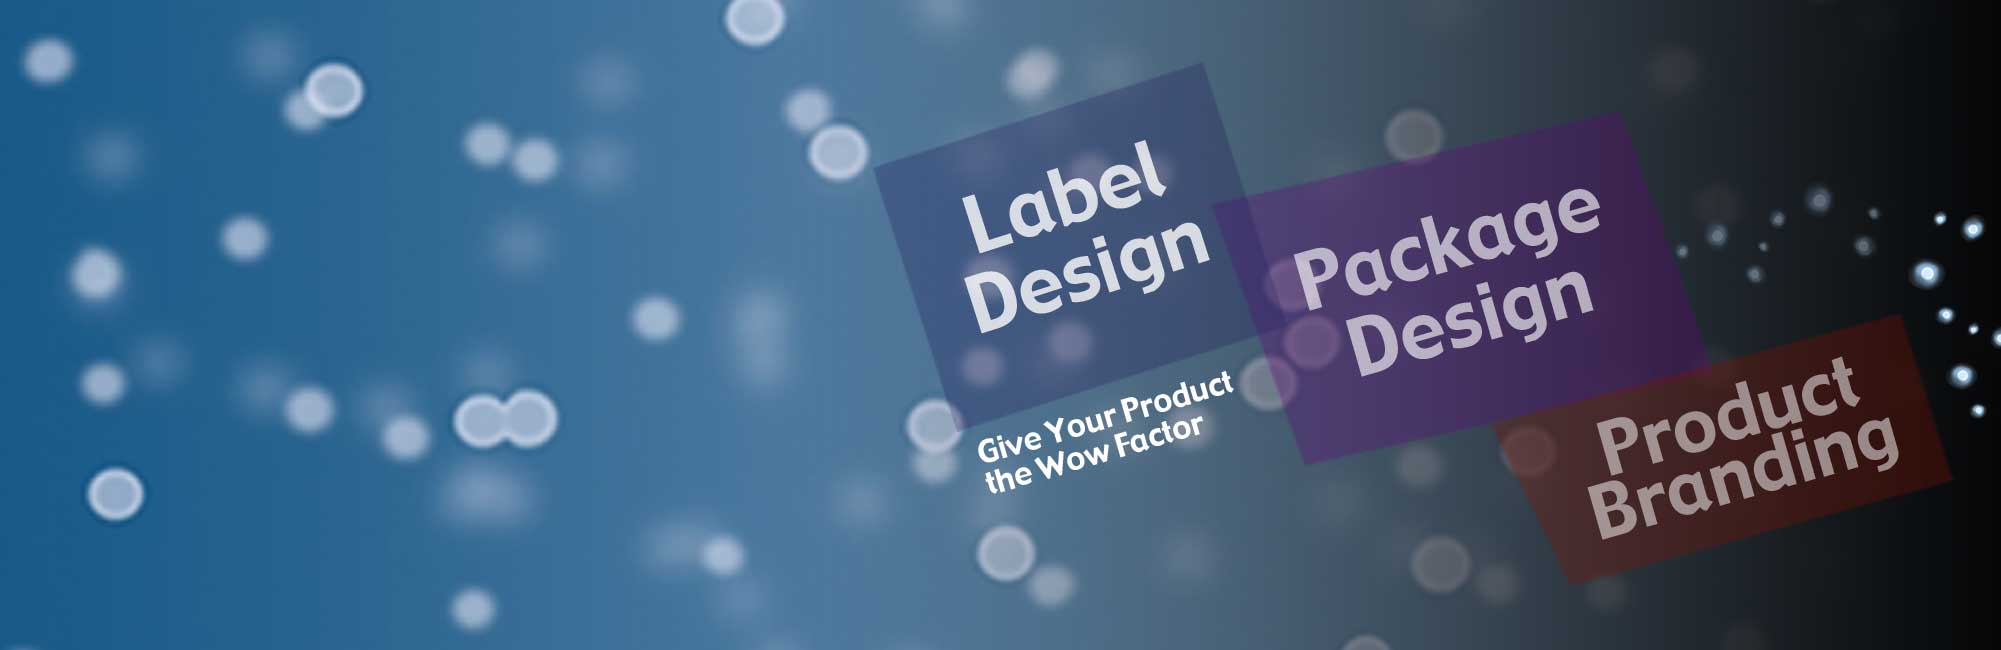 Label Designer Allentown PA